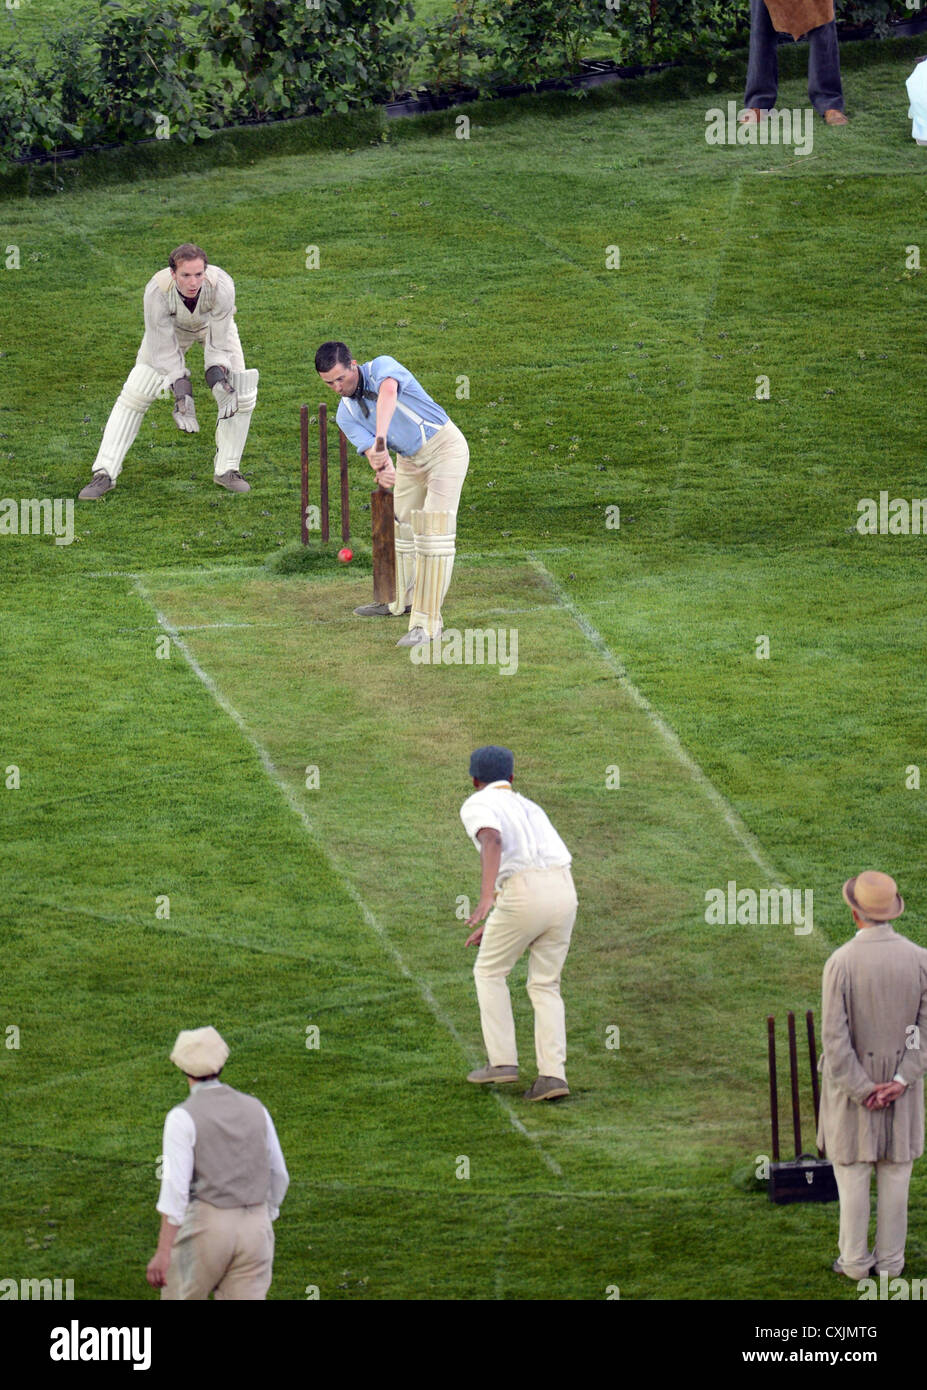 cricket on the green - Stock Image